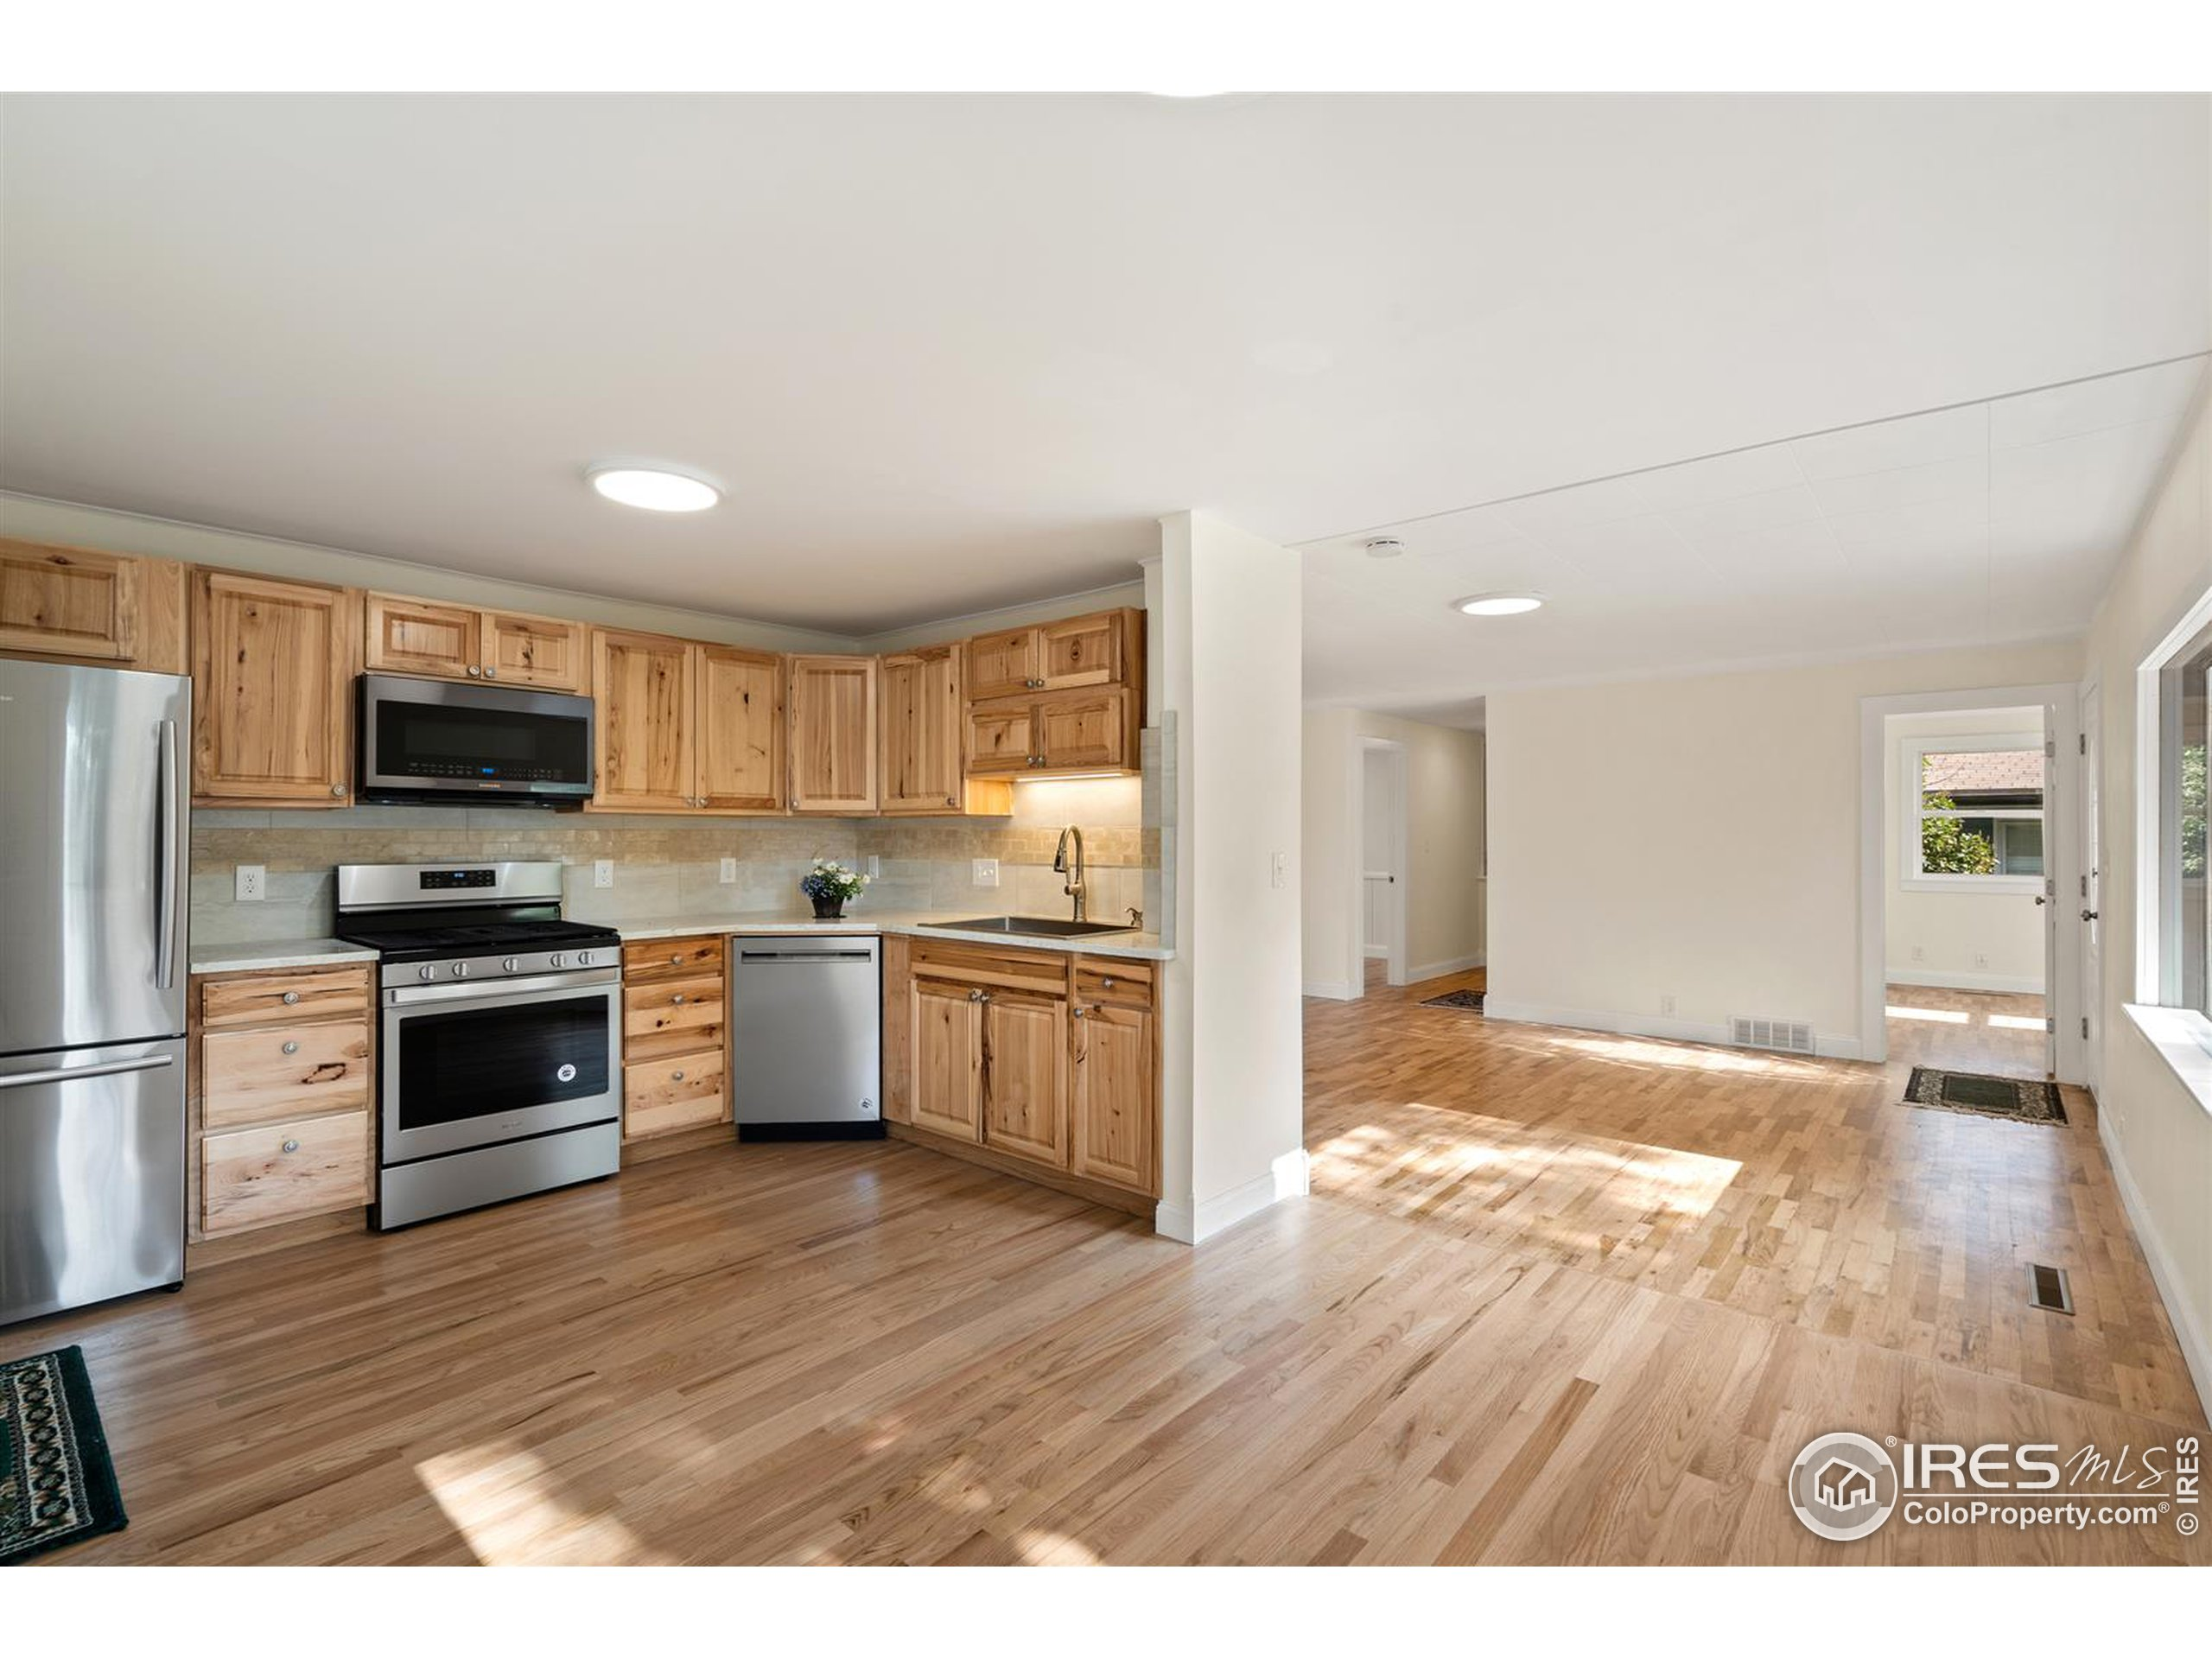 Beautiful new kitchen with all brand new stainless steel appliances